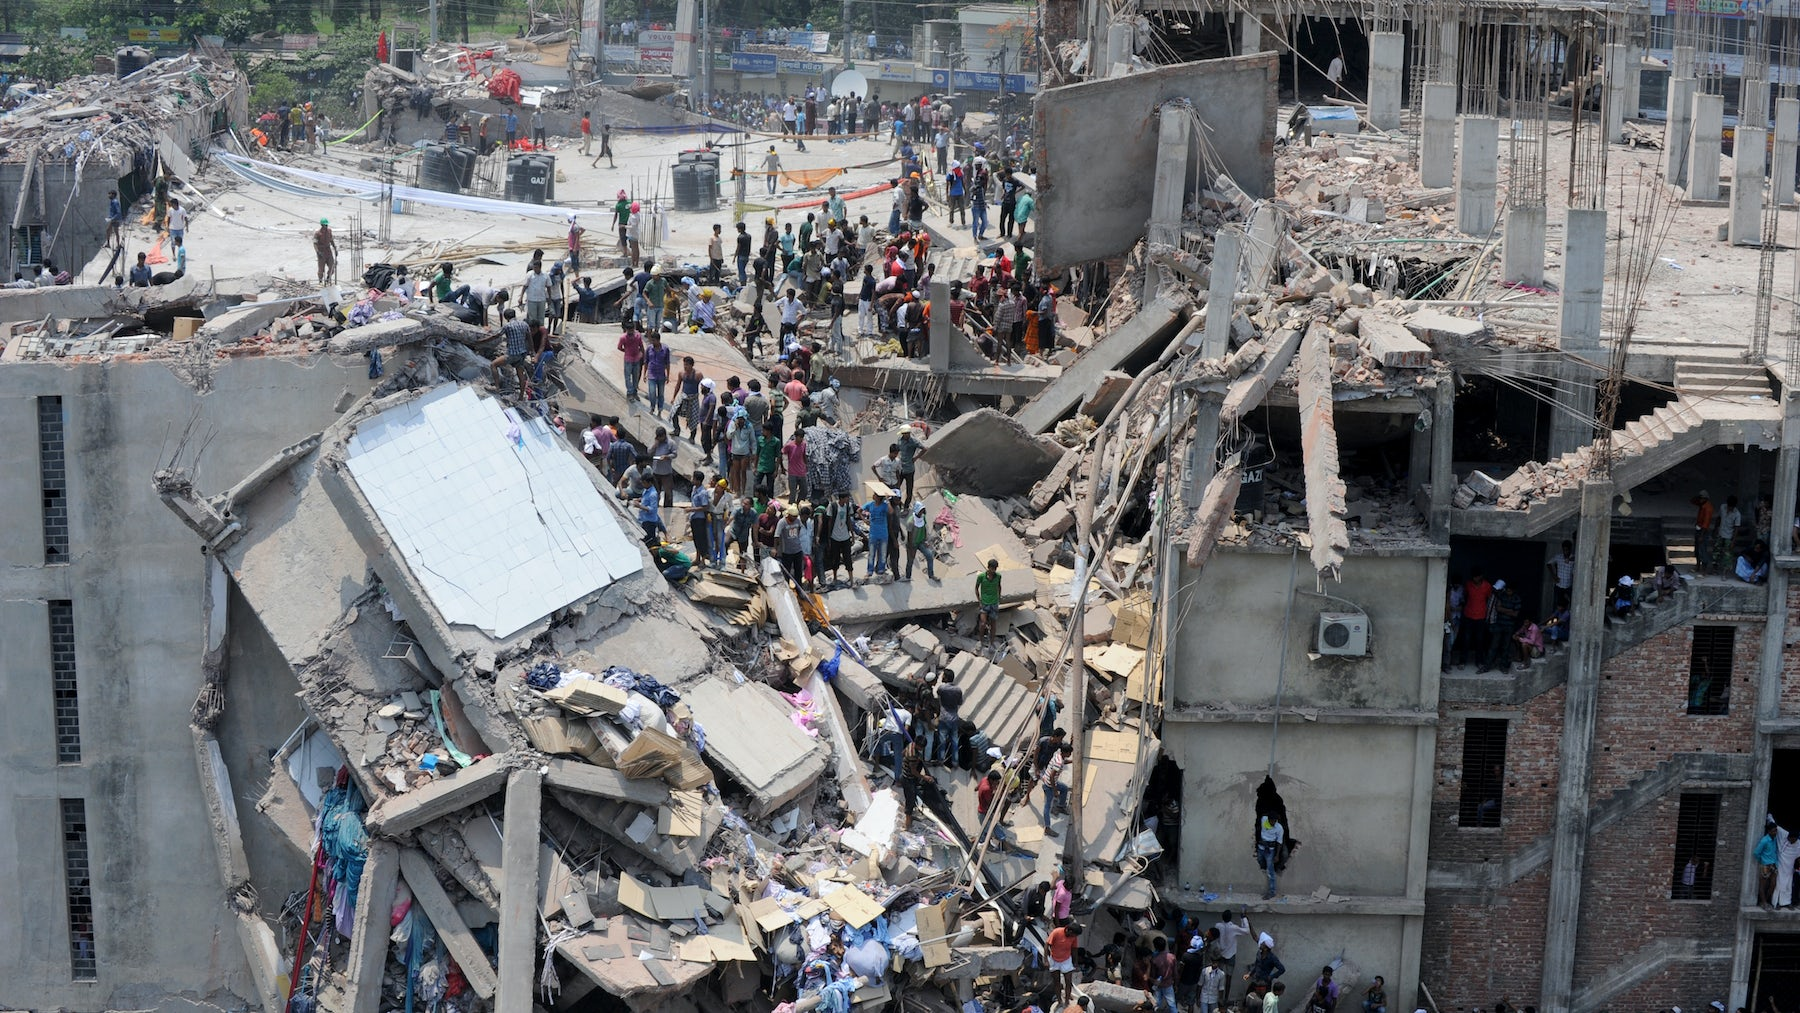 Rana Plaza collapse in 2013 | Source: Shutterstock